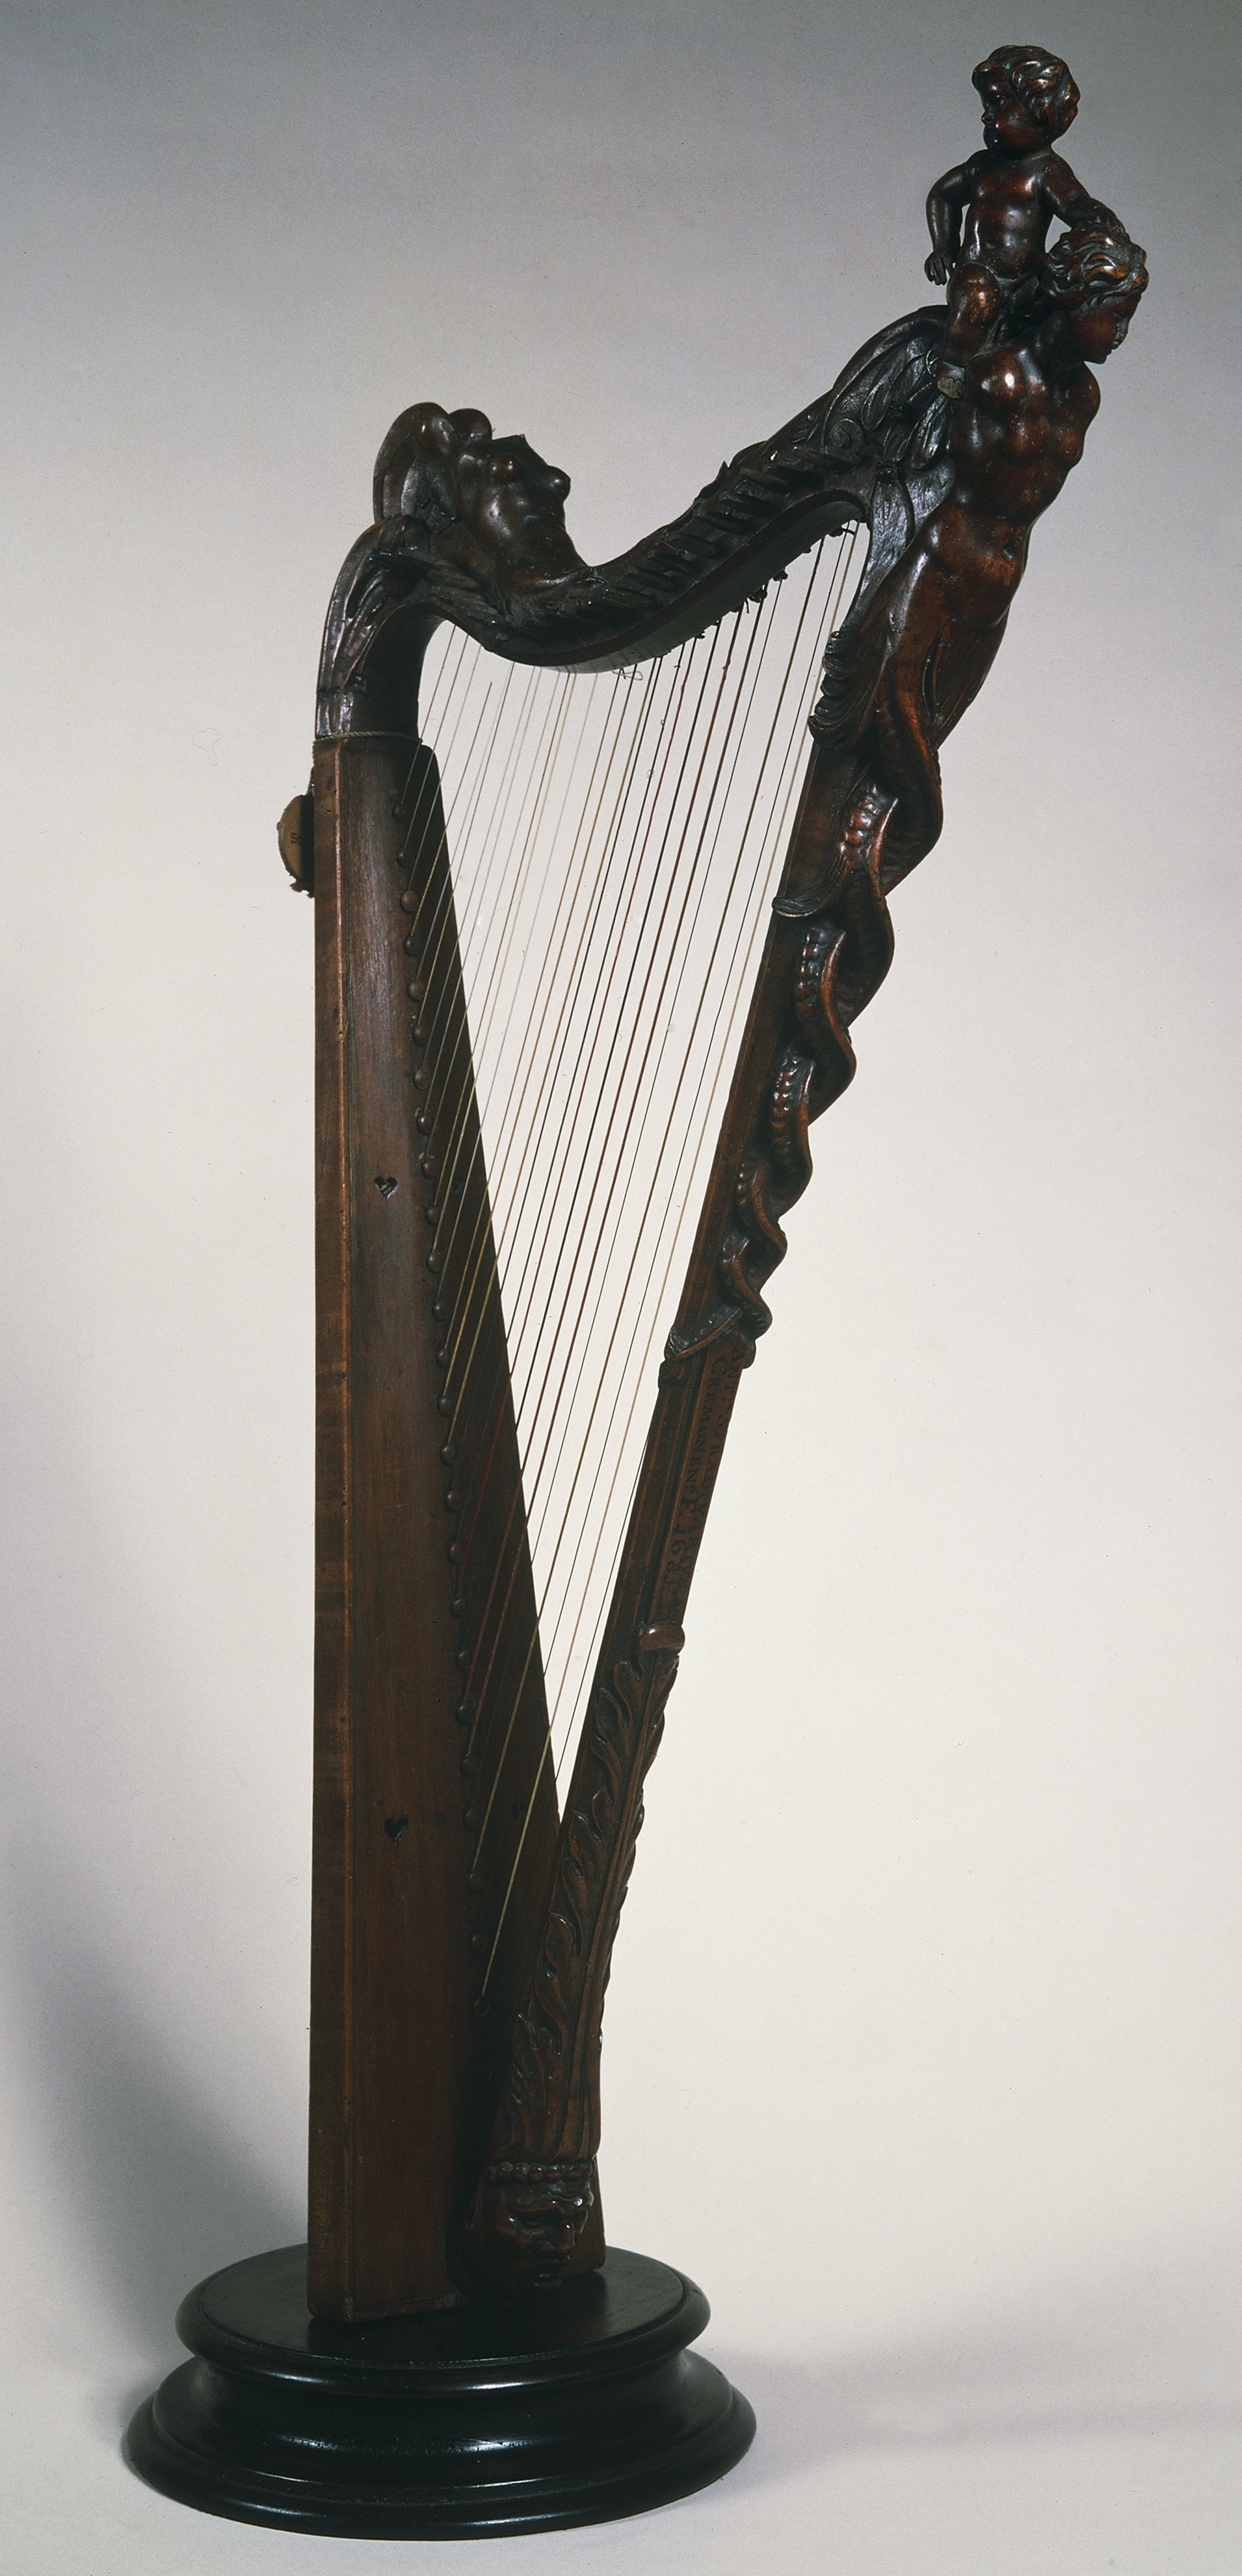 Small harp by Stradivari in 1681. Photo: Getty Images